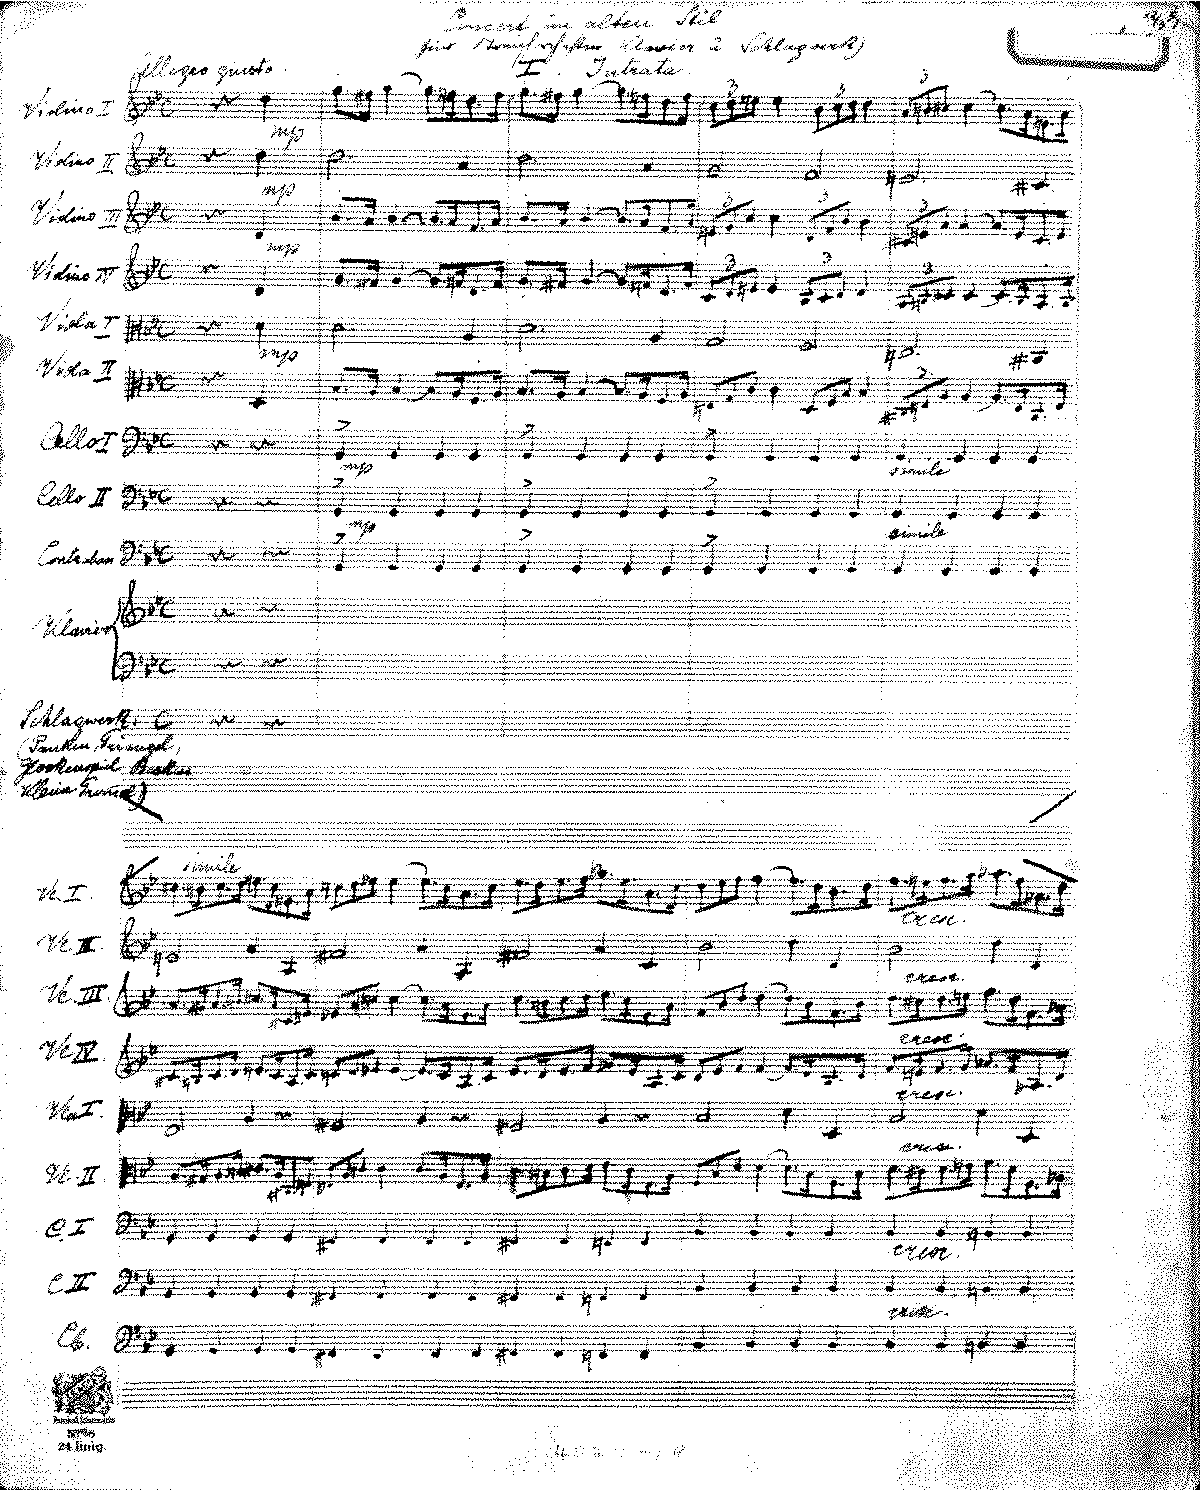 PMLP576507-opus 68 Concerto in olden style.pdf